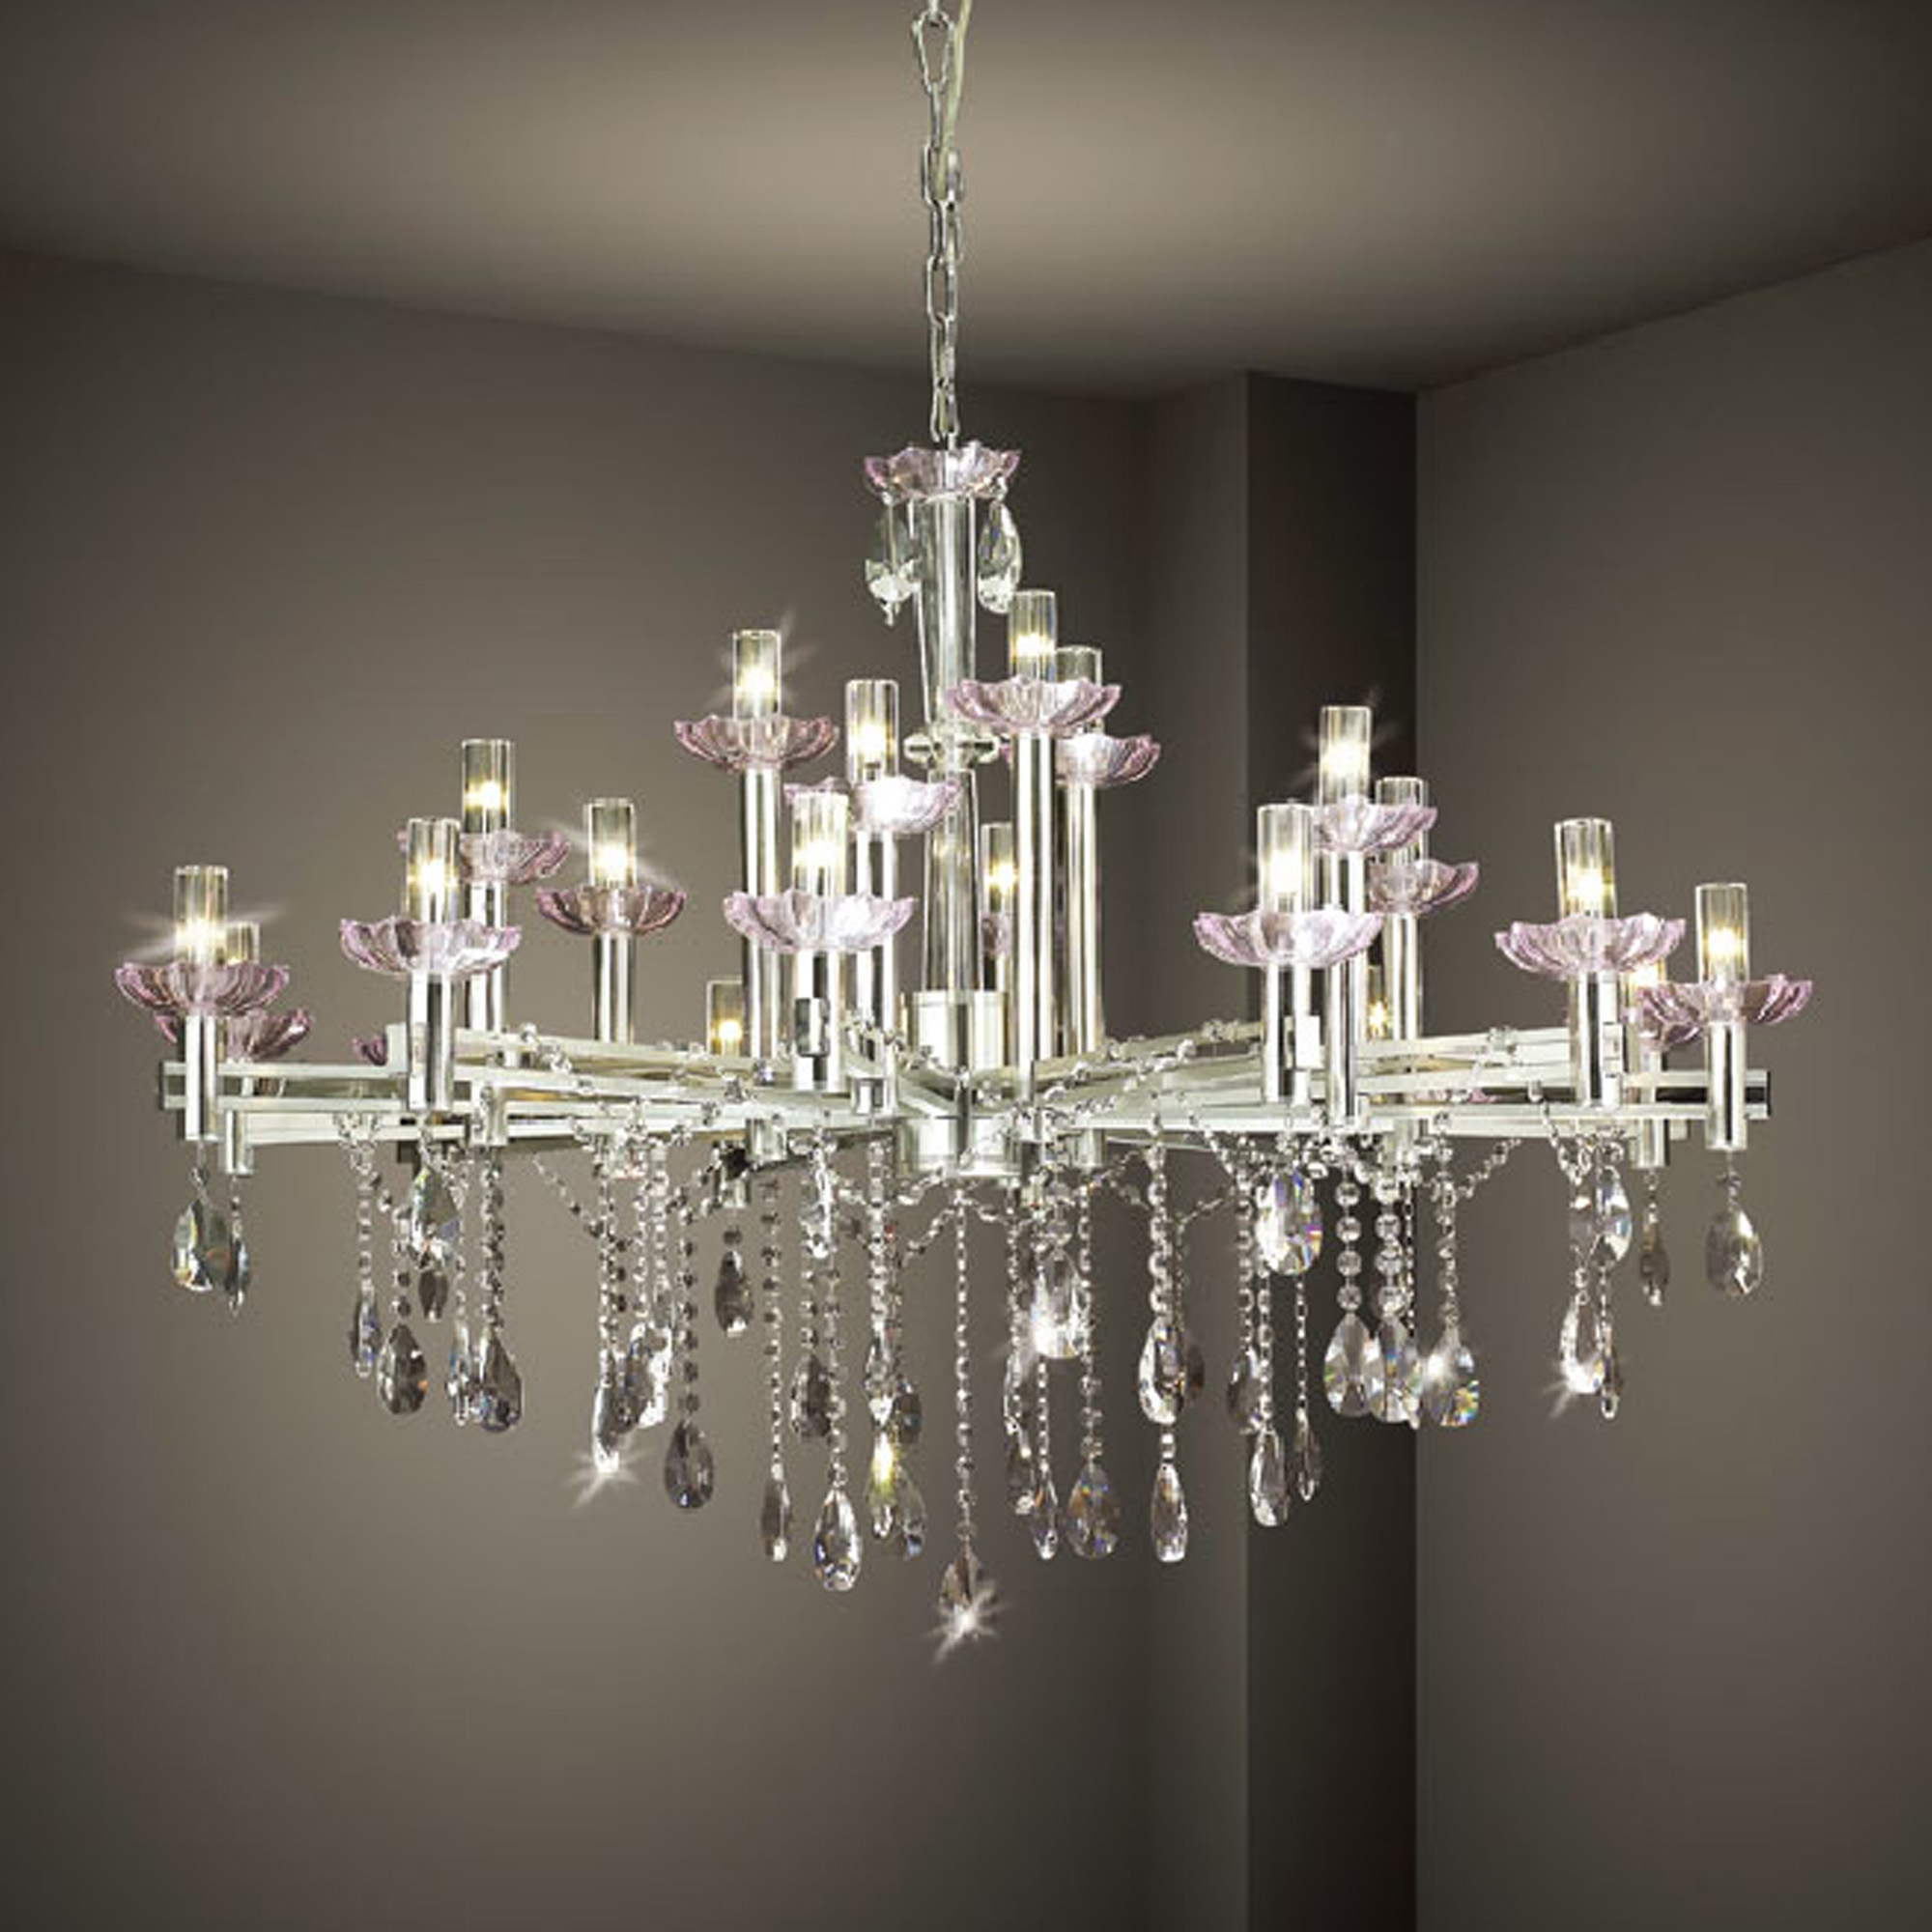 Chandelier Lights For Dining Room 15 Collection Of Chandelier Wall Lights Chandelier Ideas